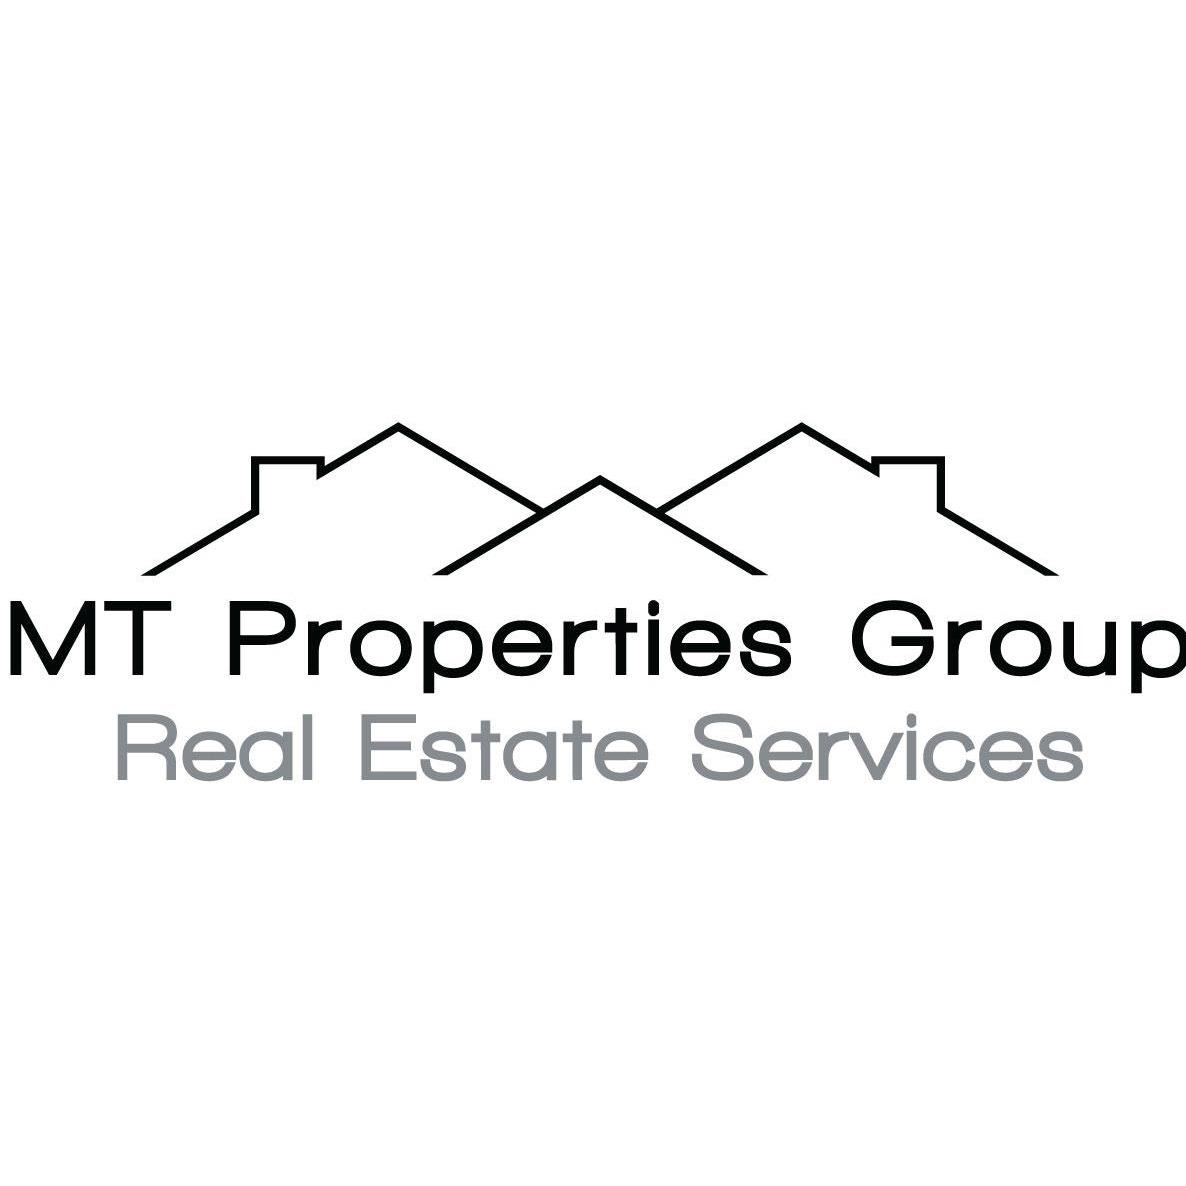 MT Properties Group Real Estate Service